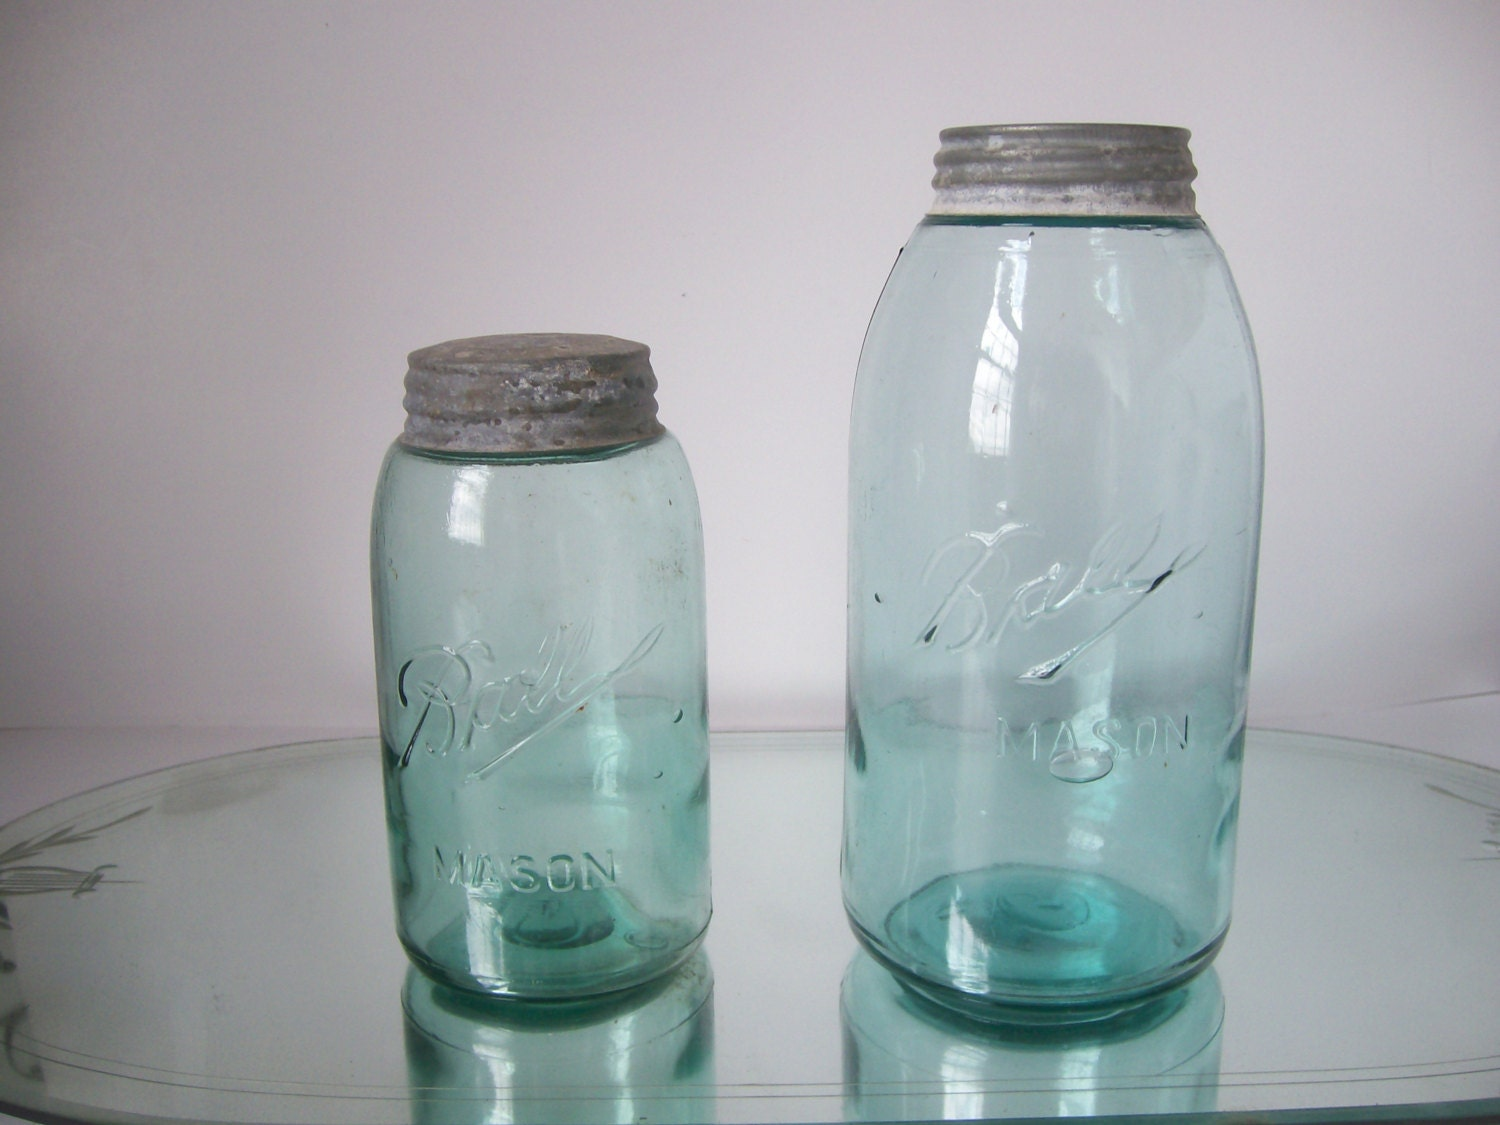 Mason jar logo dating 6